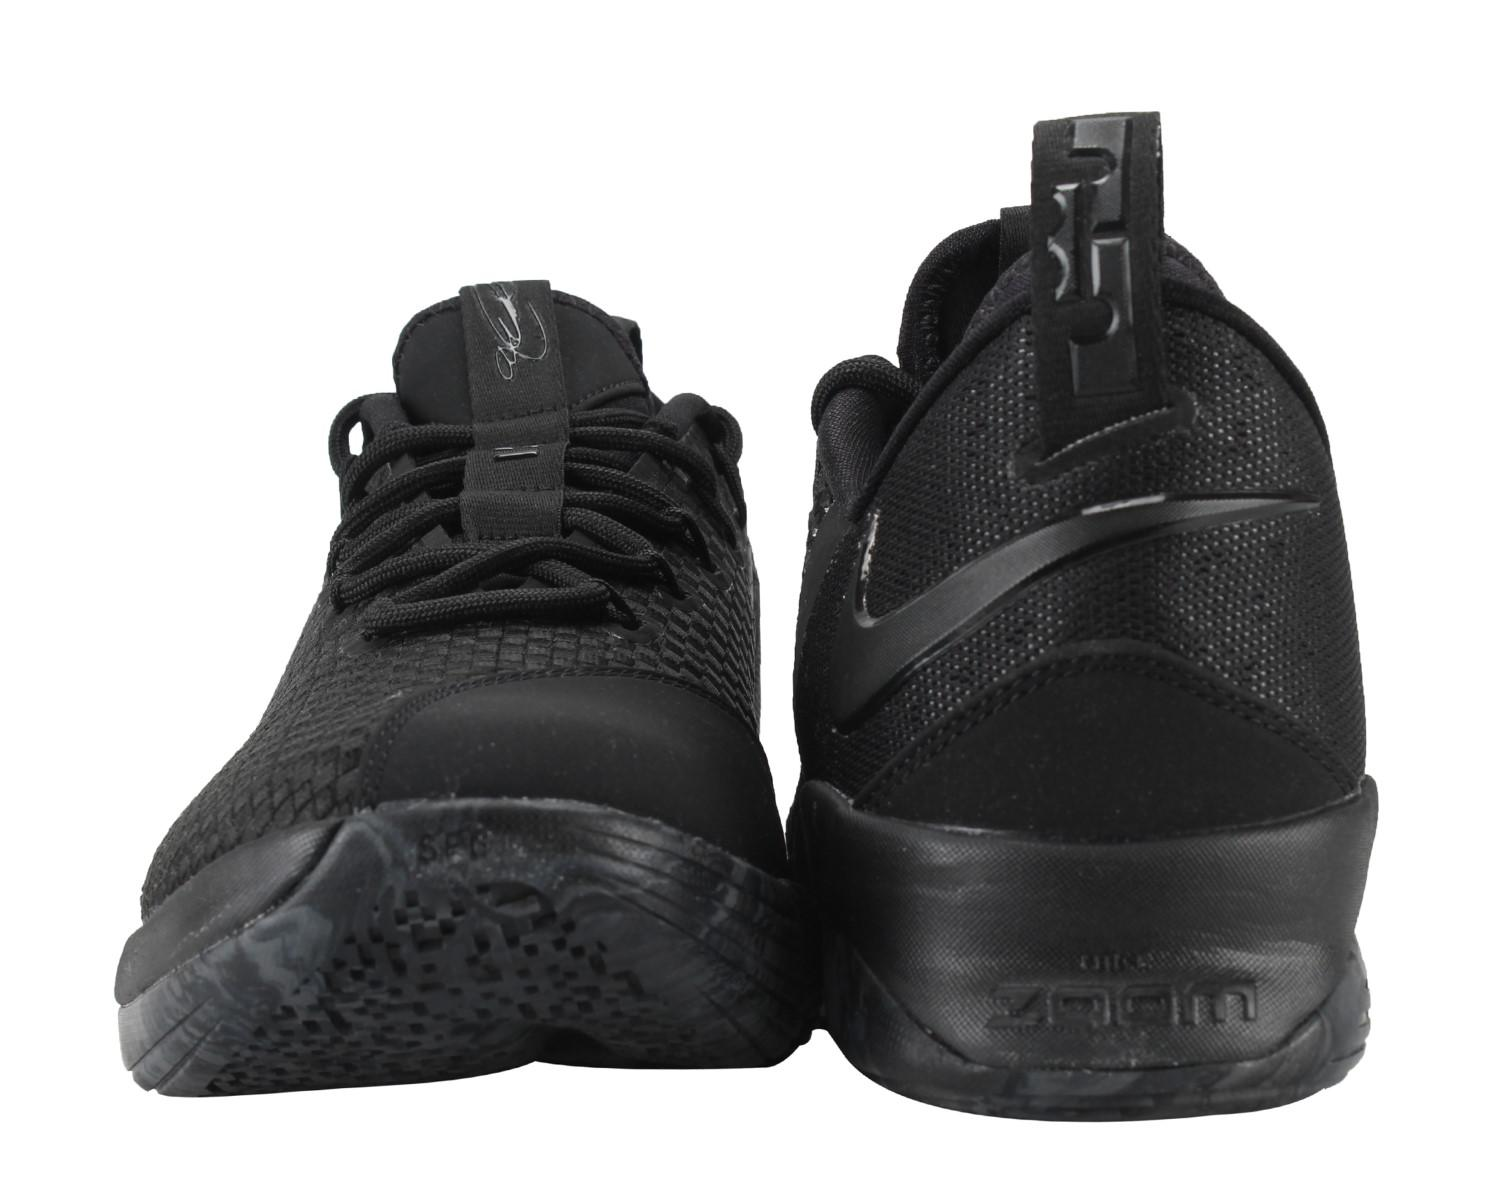 d1429302f08 Lyst - Nike Lebron Xiv Low Basketball Shoes 878636 in Black for Men